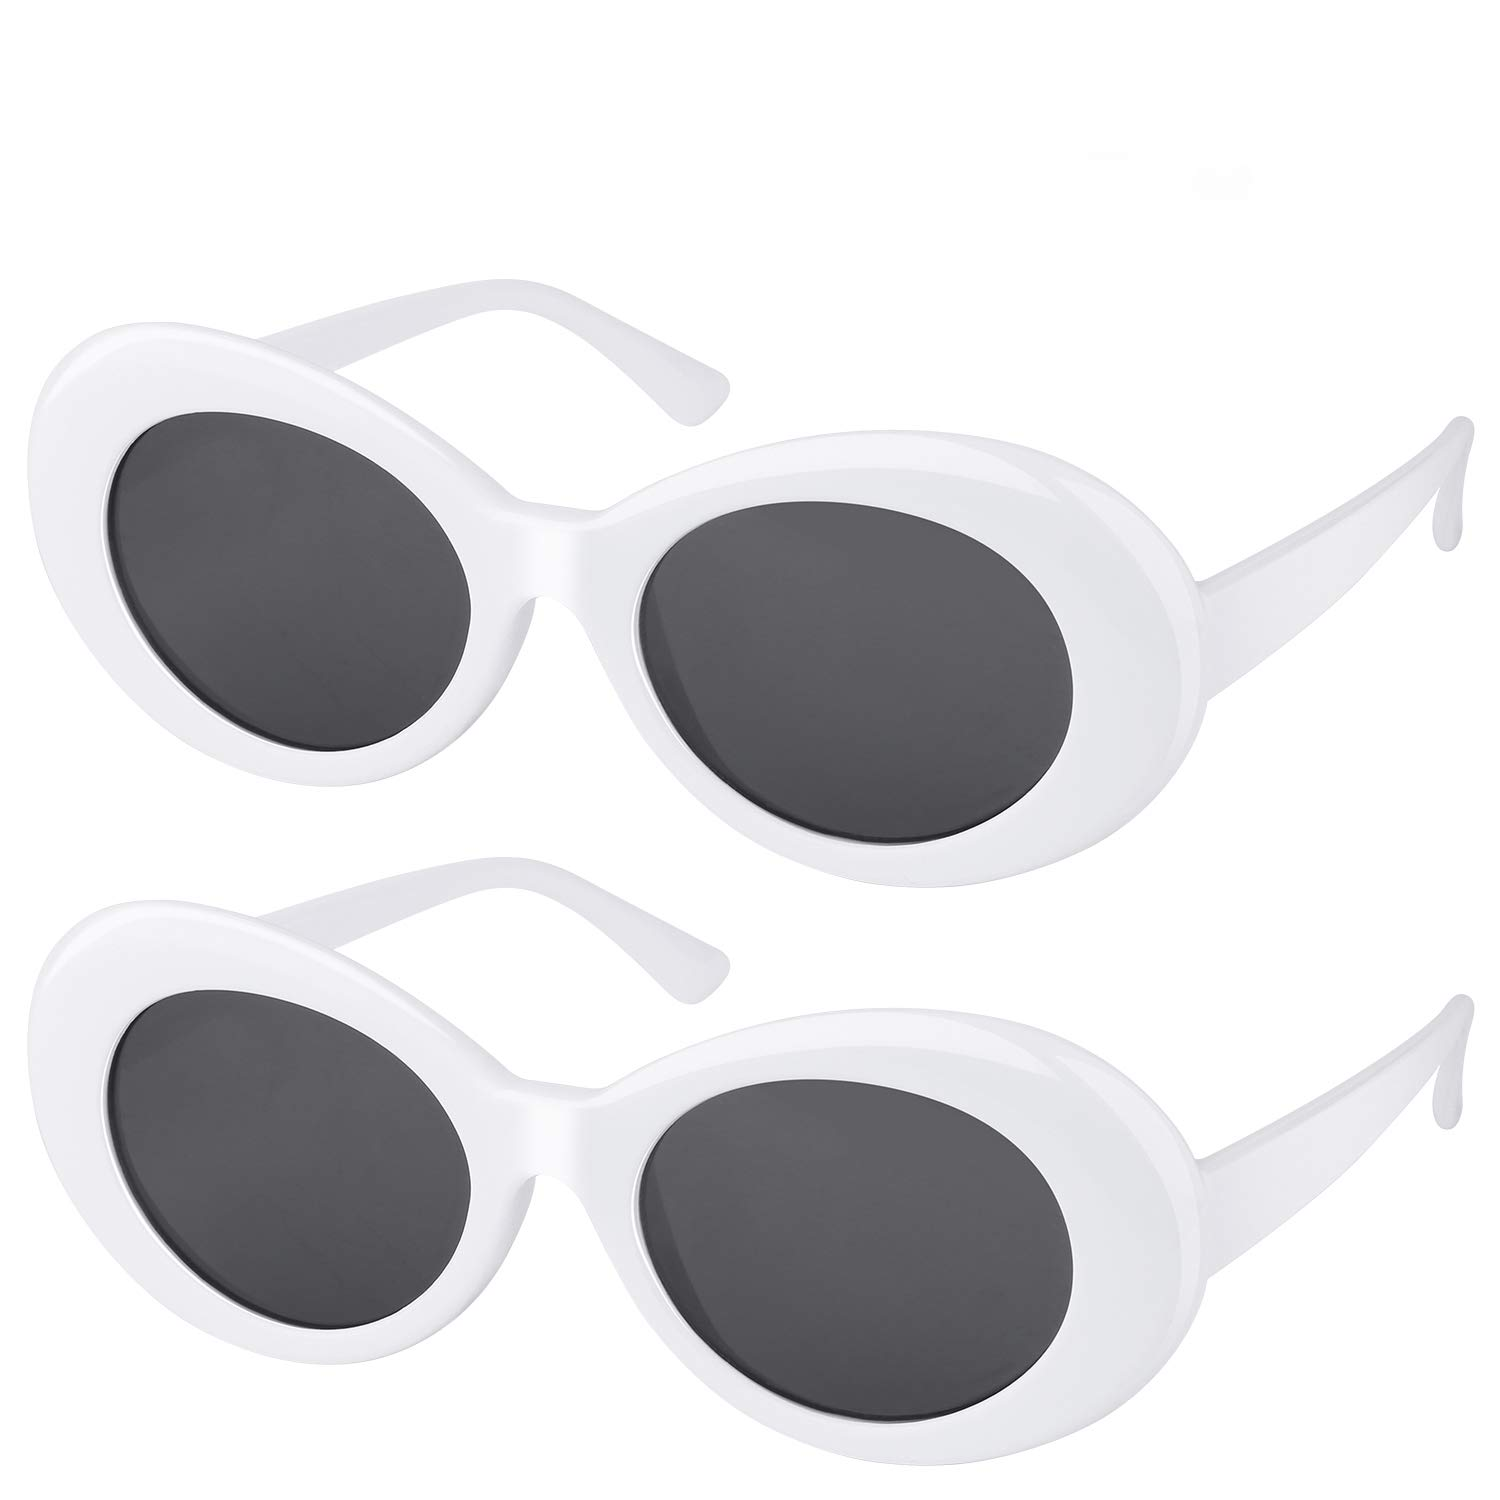 7d42f30c82  One Price for Two  Elimoons Clout Goggles Bold Retro Oval Mod Thick Frame  Sunglasses Round Lens ...